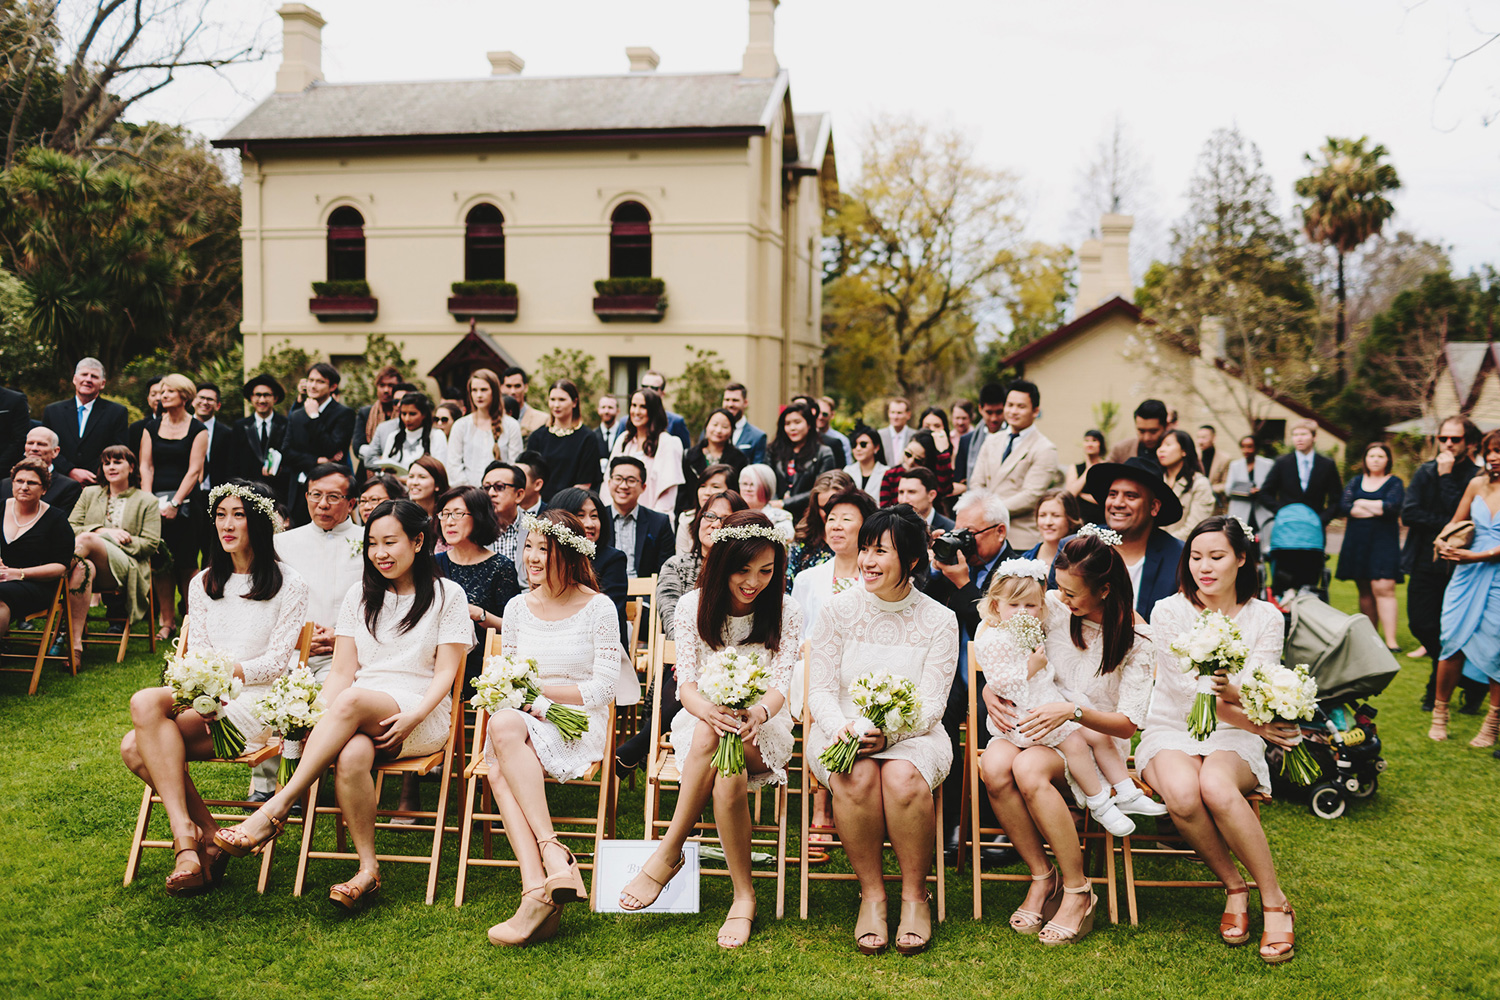 039-Sayher-&-Amelia-Melbourne-Wedding.jpg